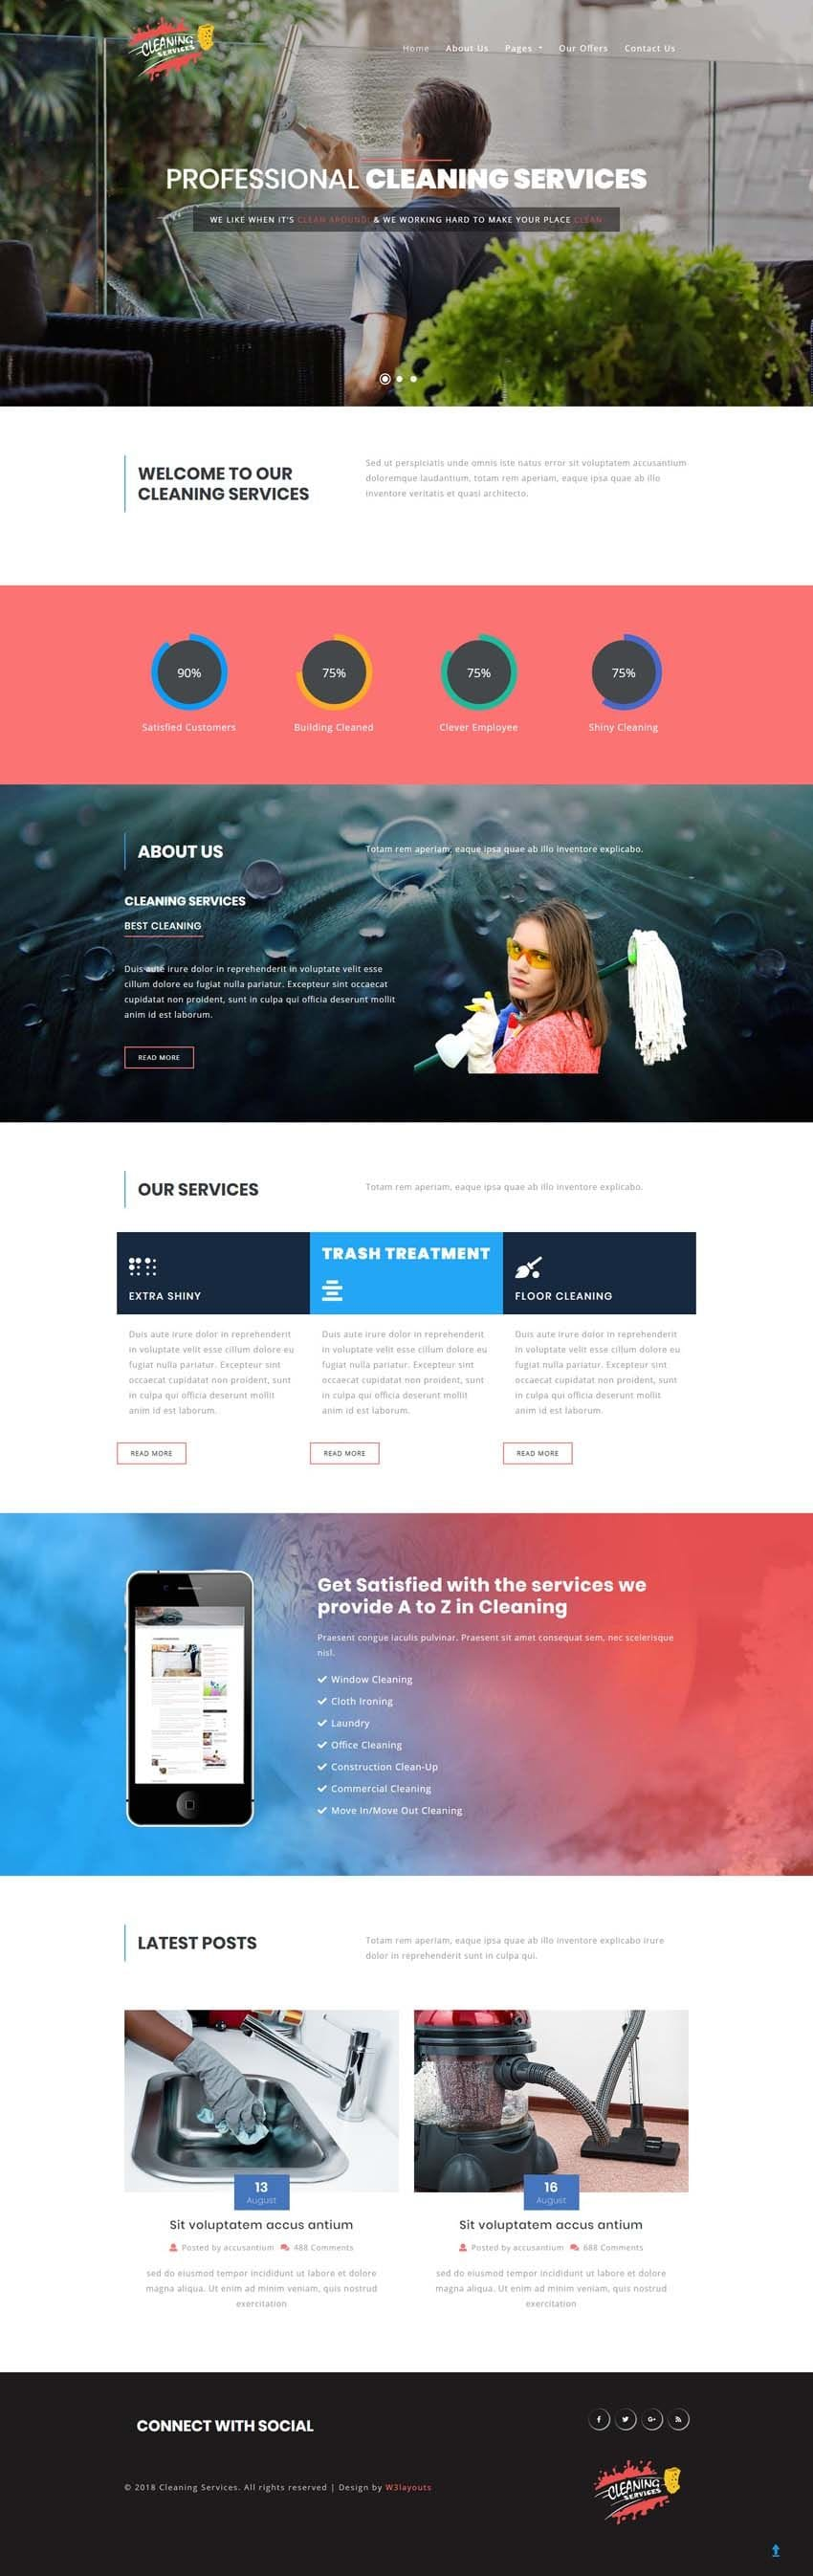 Download Cleaning Services template for free. This house keeping website template has been built with HTML & CSS and is perfect for service websites.